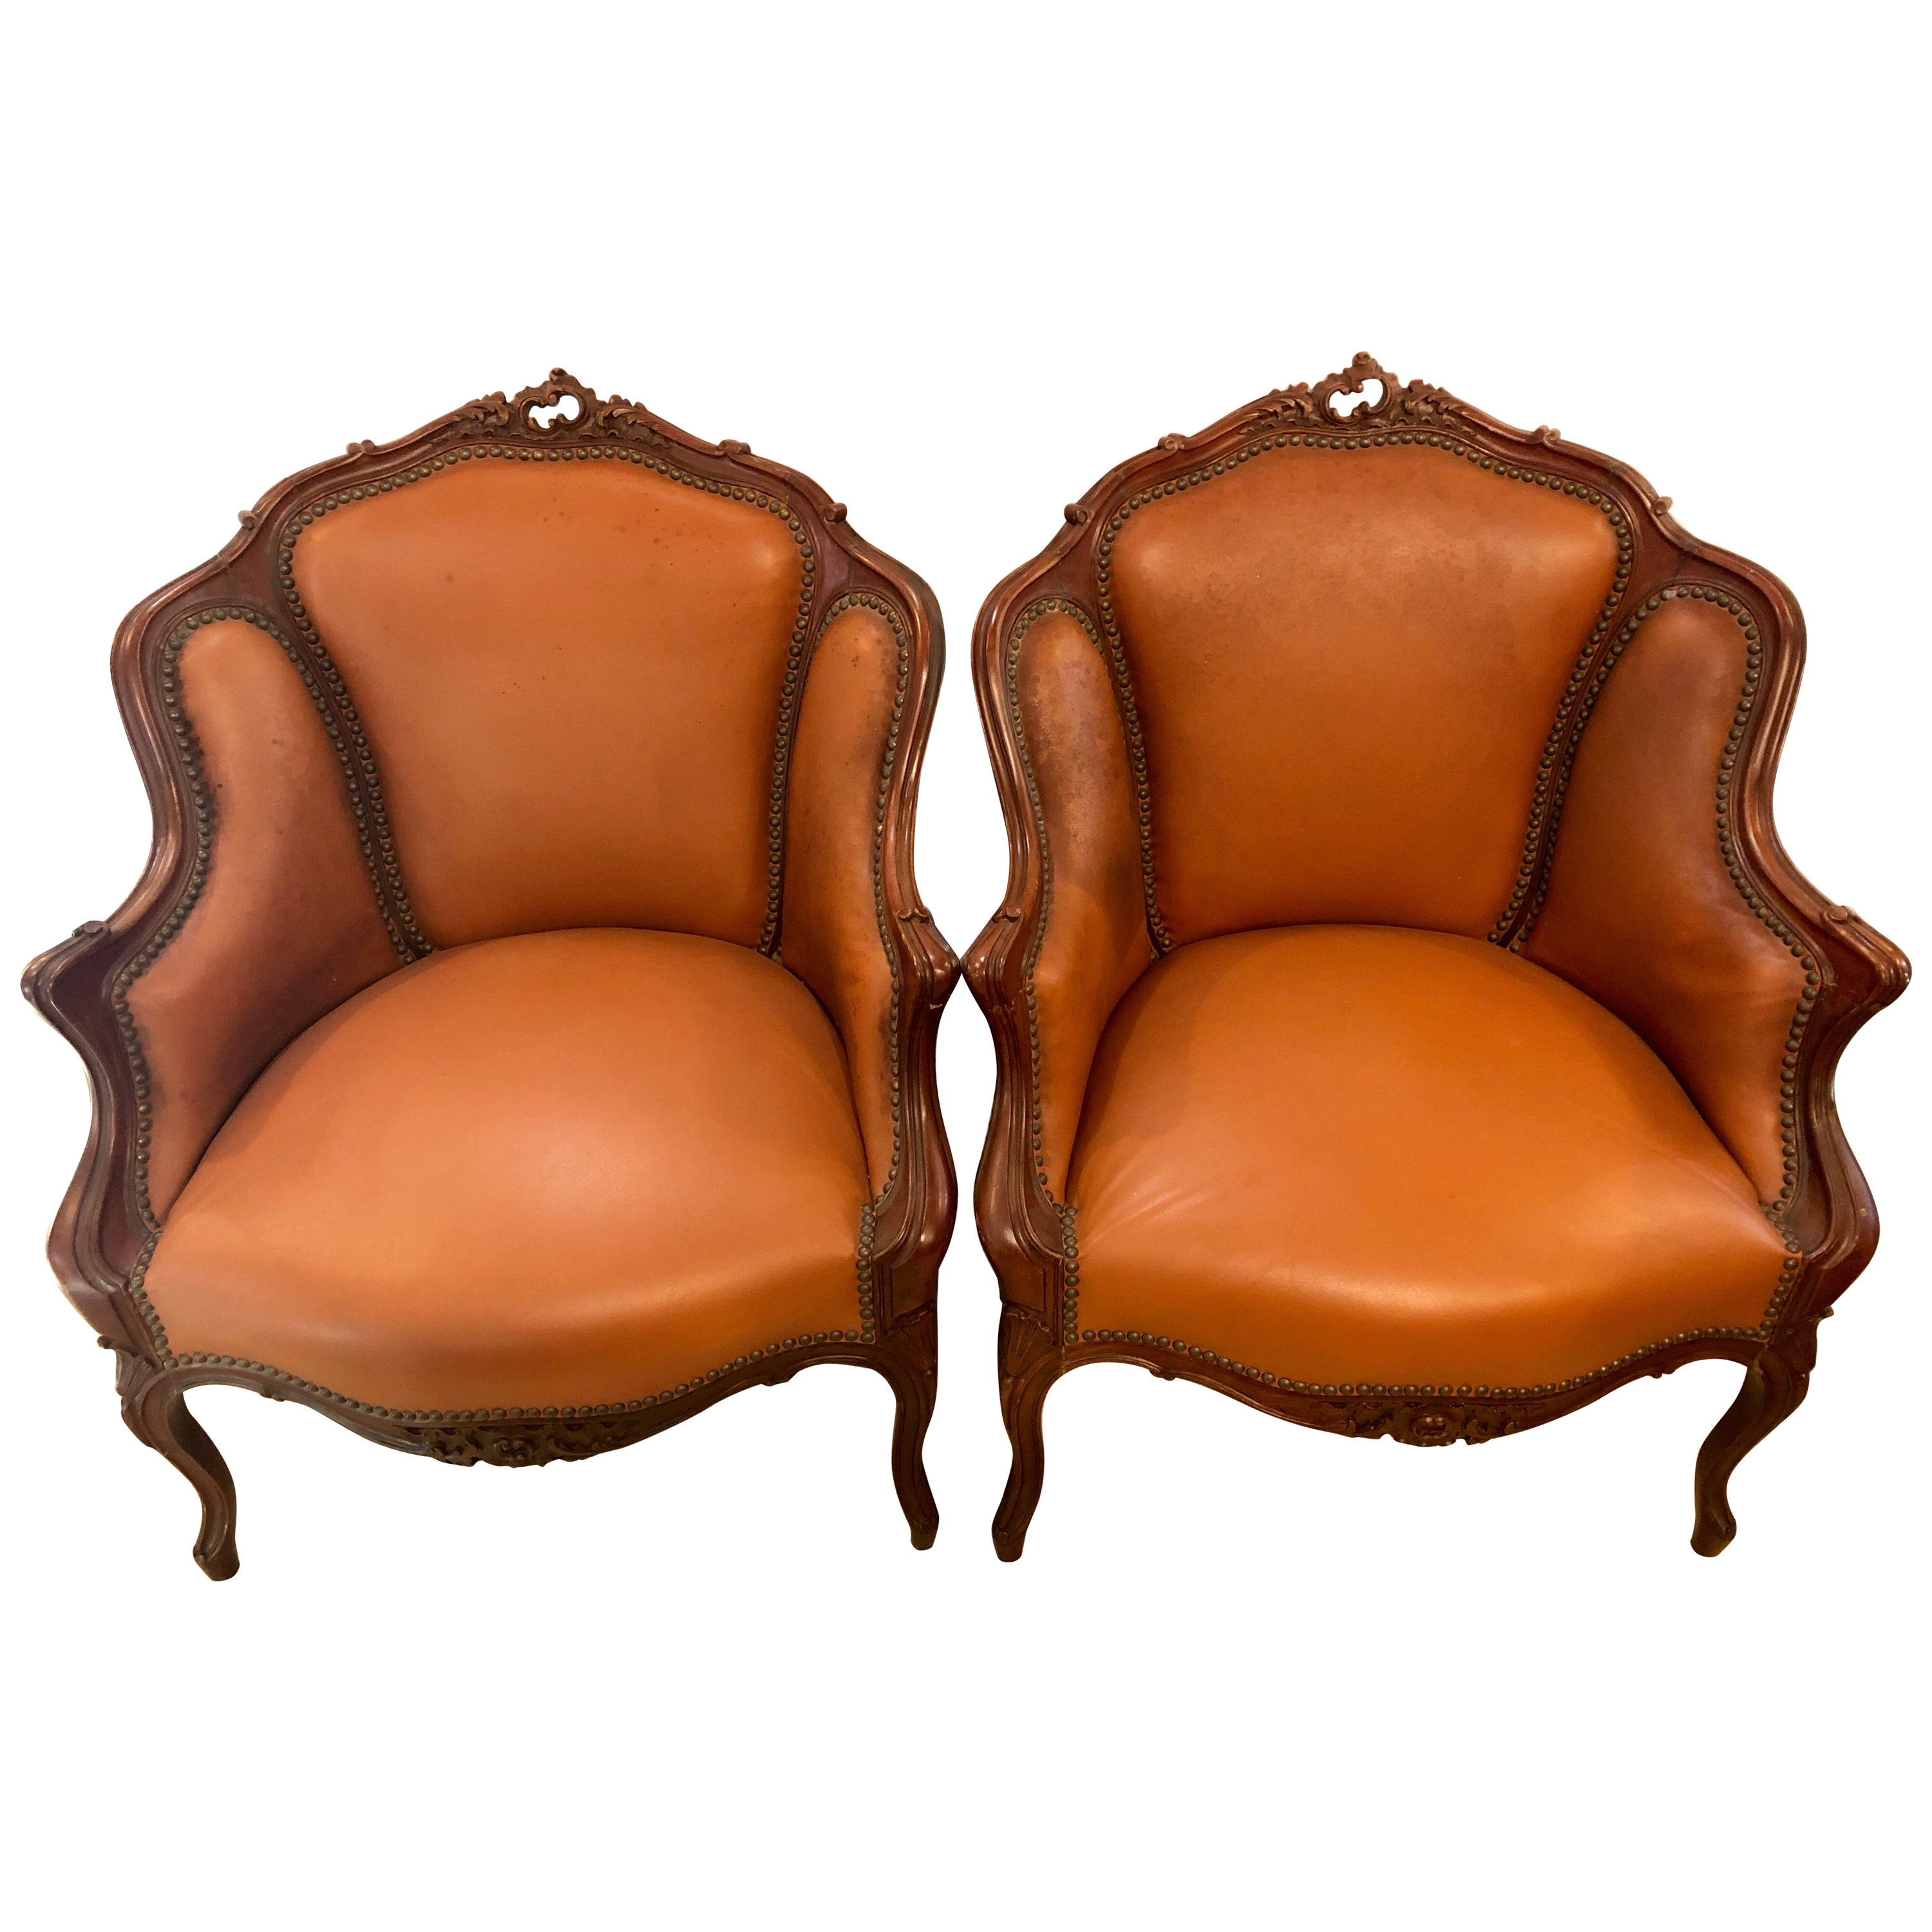 Pair of Early 1920s Louis XV Style Barrel Back Bergere Armchairs